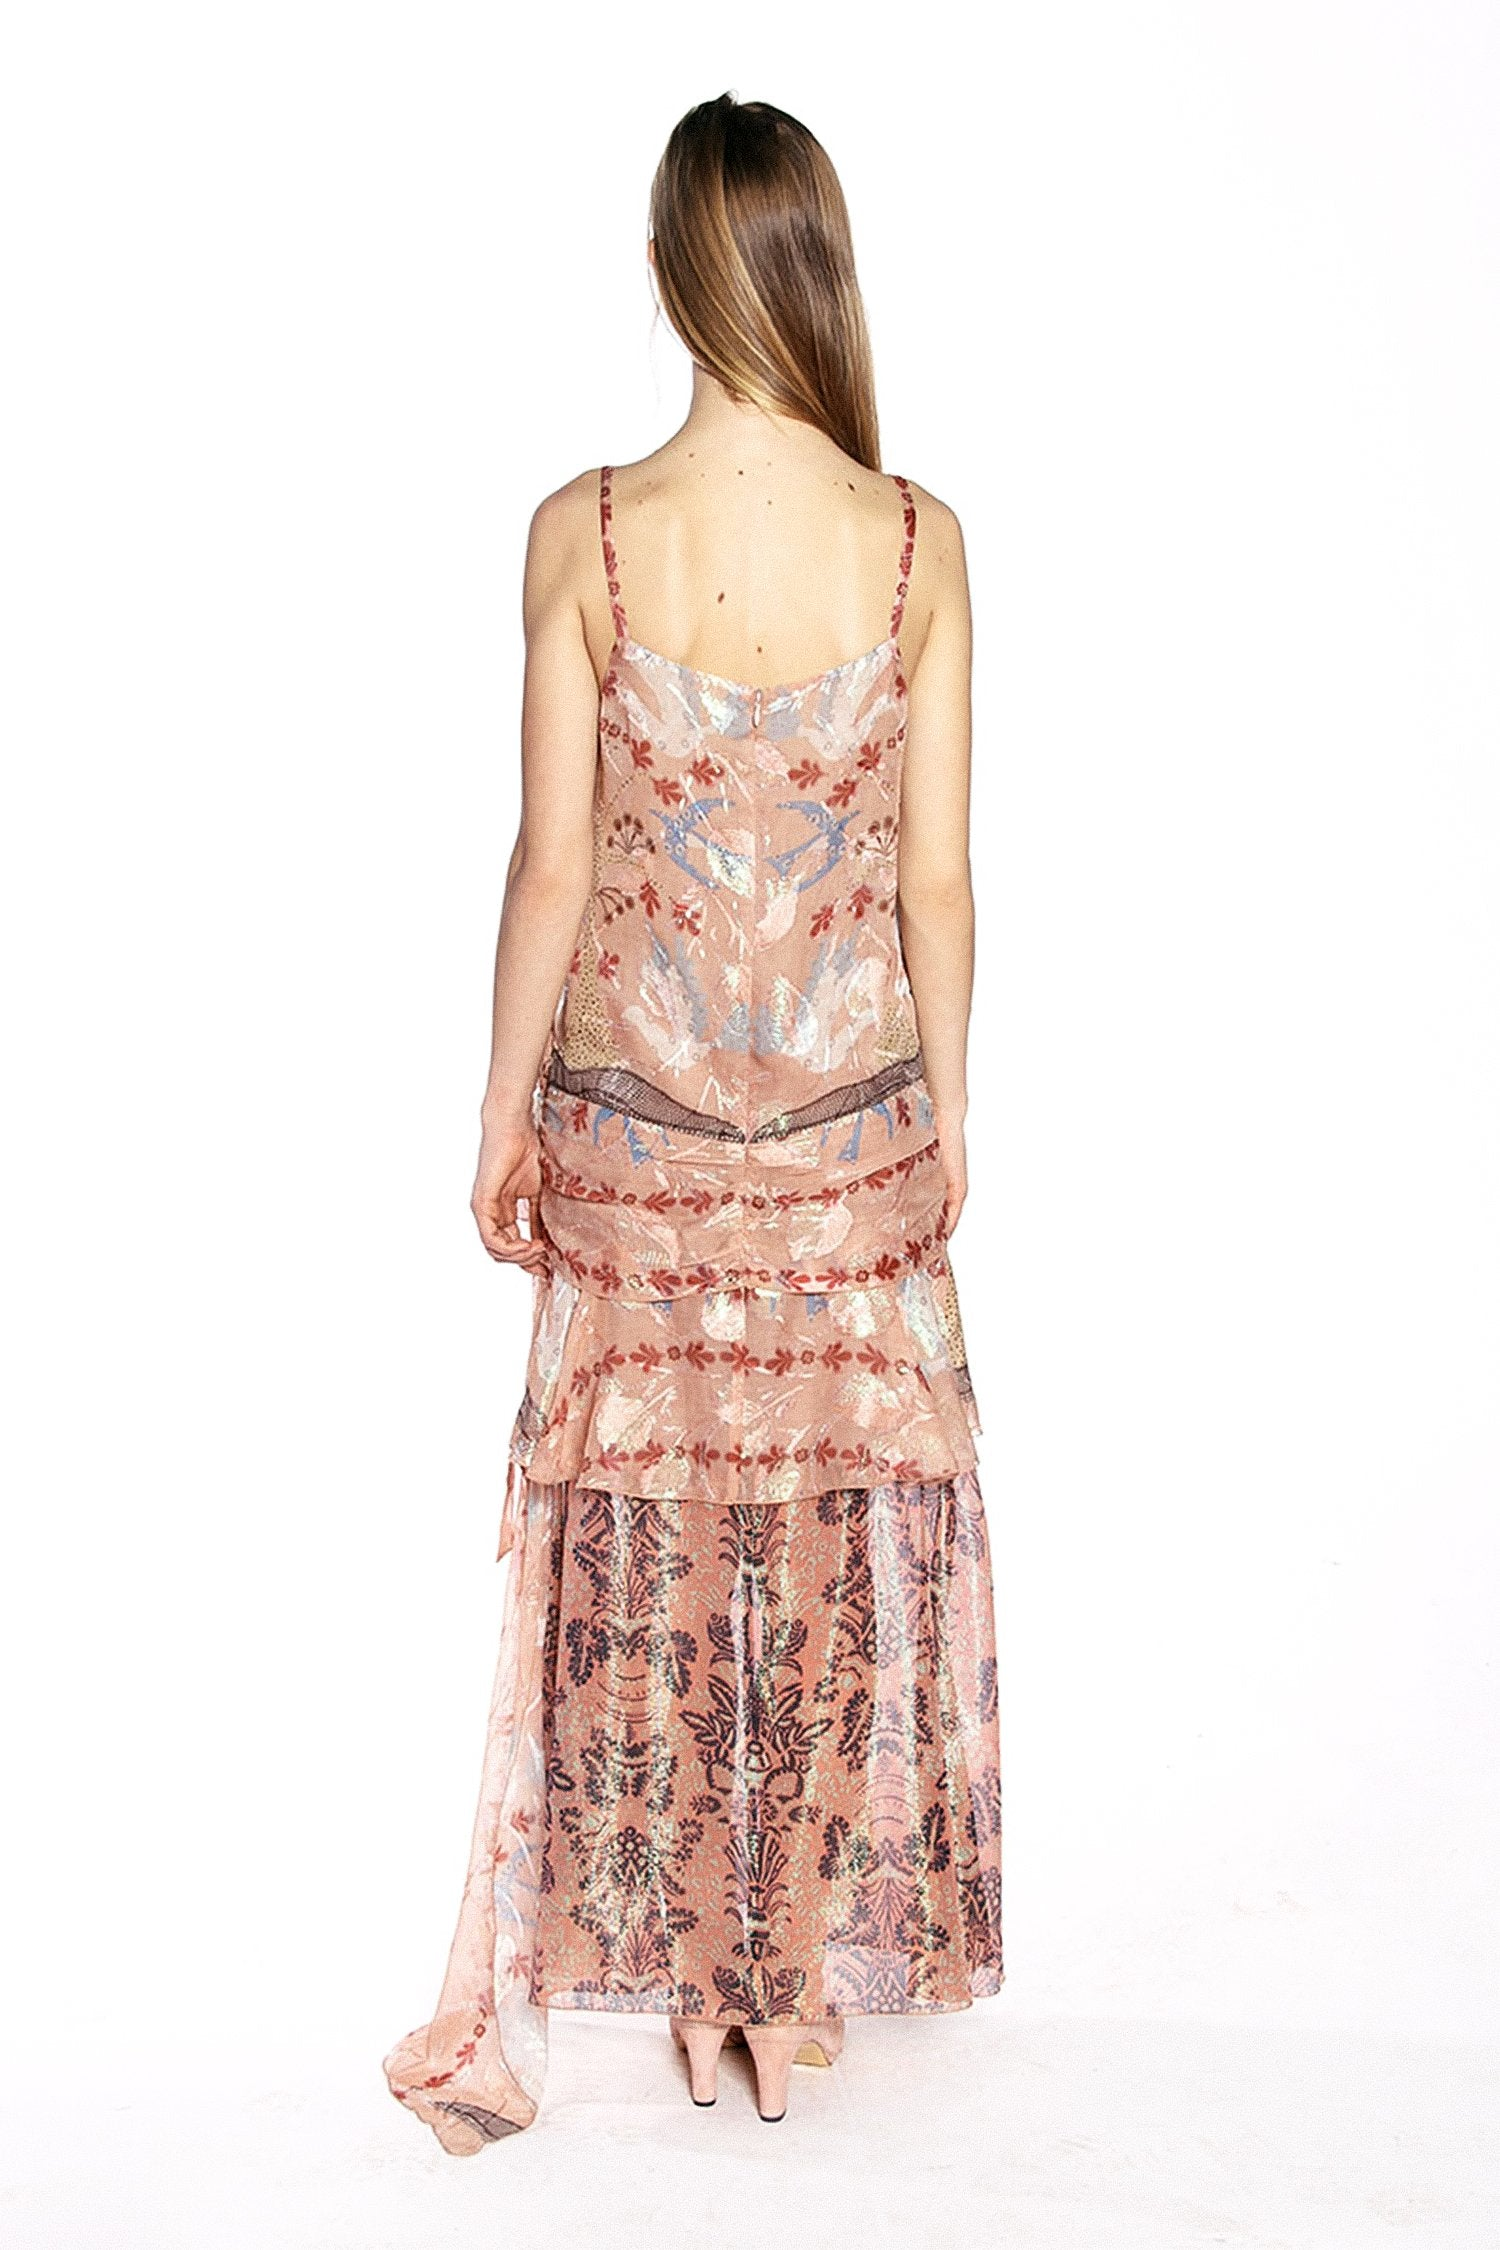 Feathers & Foliage Metallic Jacquard Dress